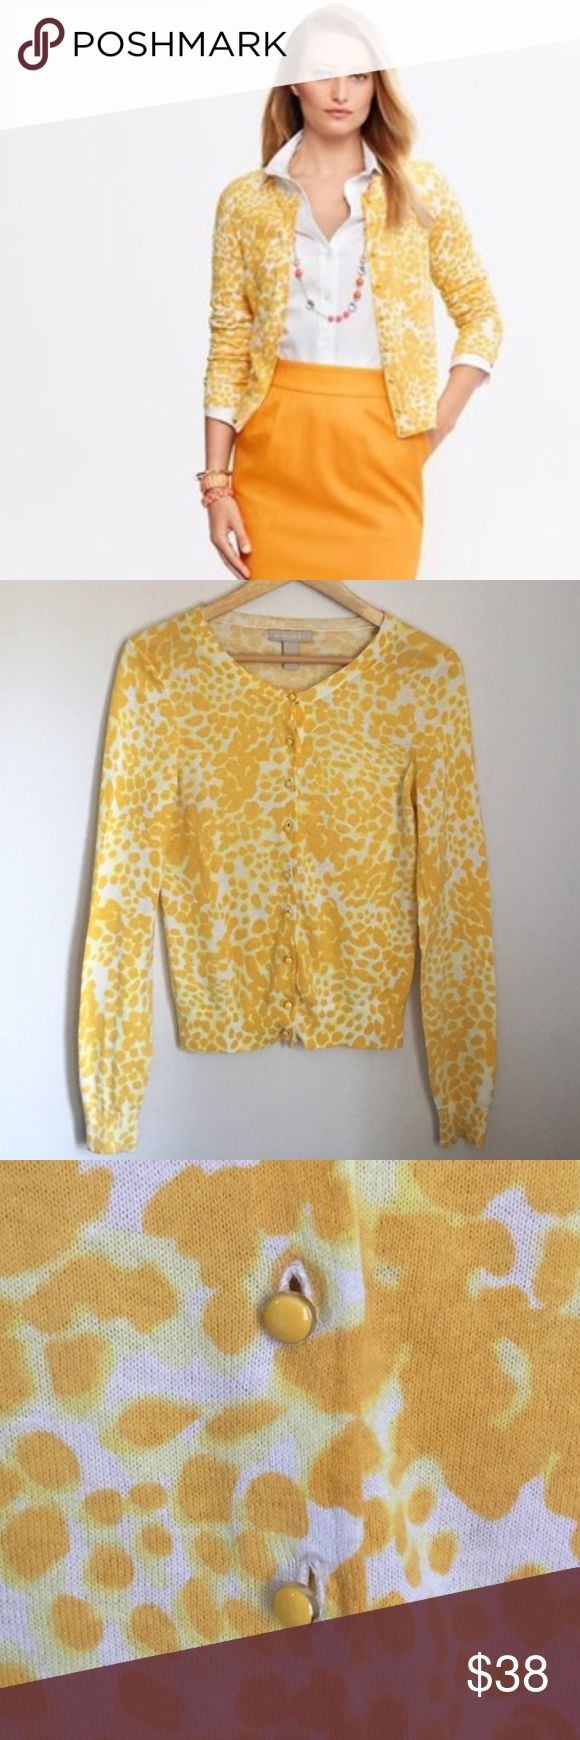 Banana Republic Yellow Animal Print Cardigan XS RARE animal print cardigan in yellow by Banana Republic. Fabric tag is gone but feels to be like all of my 100% cotton cardigans. Gold tone front painted yellow front buttons. Ribbed sleeve cuffs, collar, and hem. Size XS. gently used - great condition. Banana Republic Sweaters Cardigans